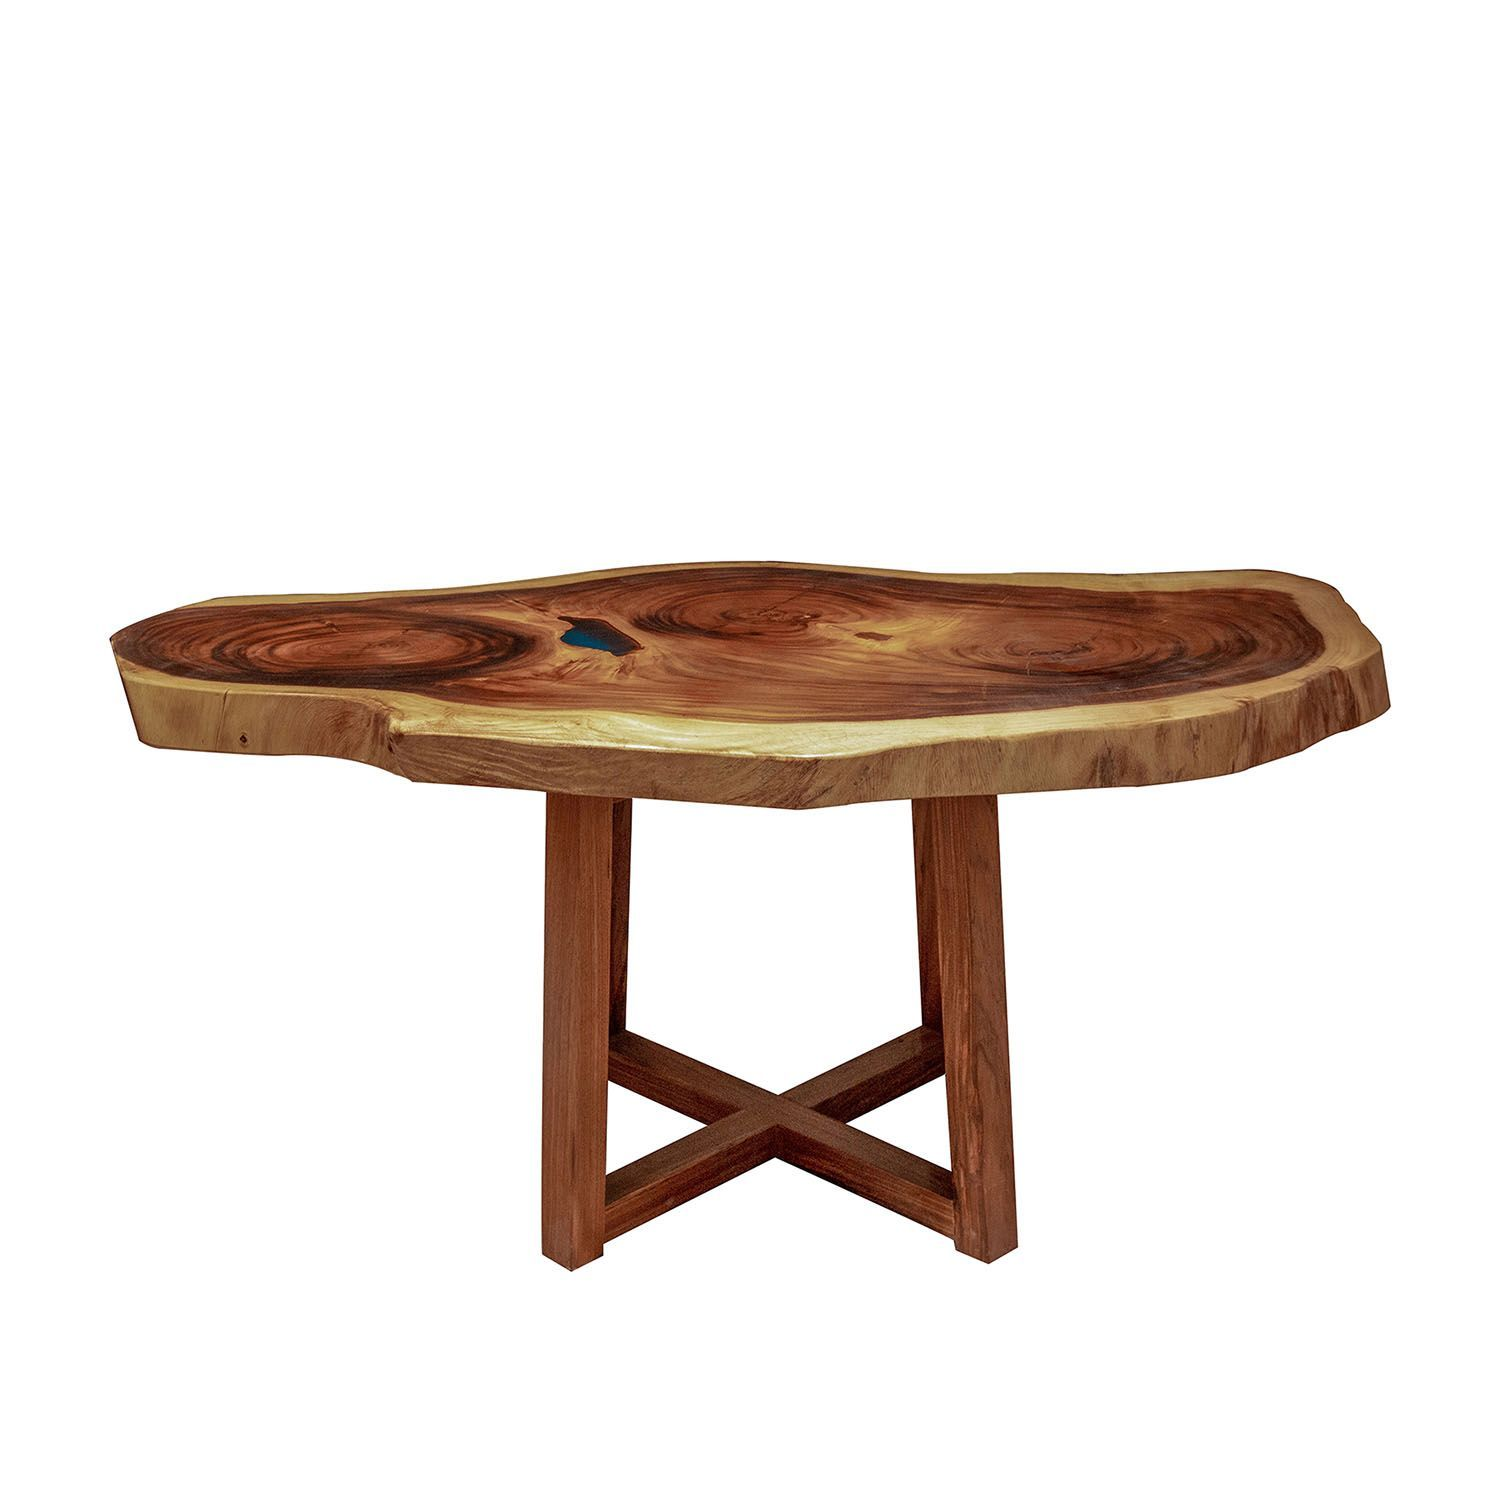 The Real Solid Zebrano Chunky Wood Live Edge Resin Blue Lake 165cm Table - Pebble & Leaf Ltd